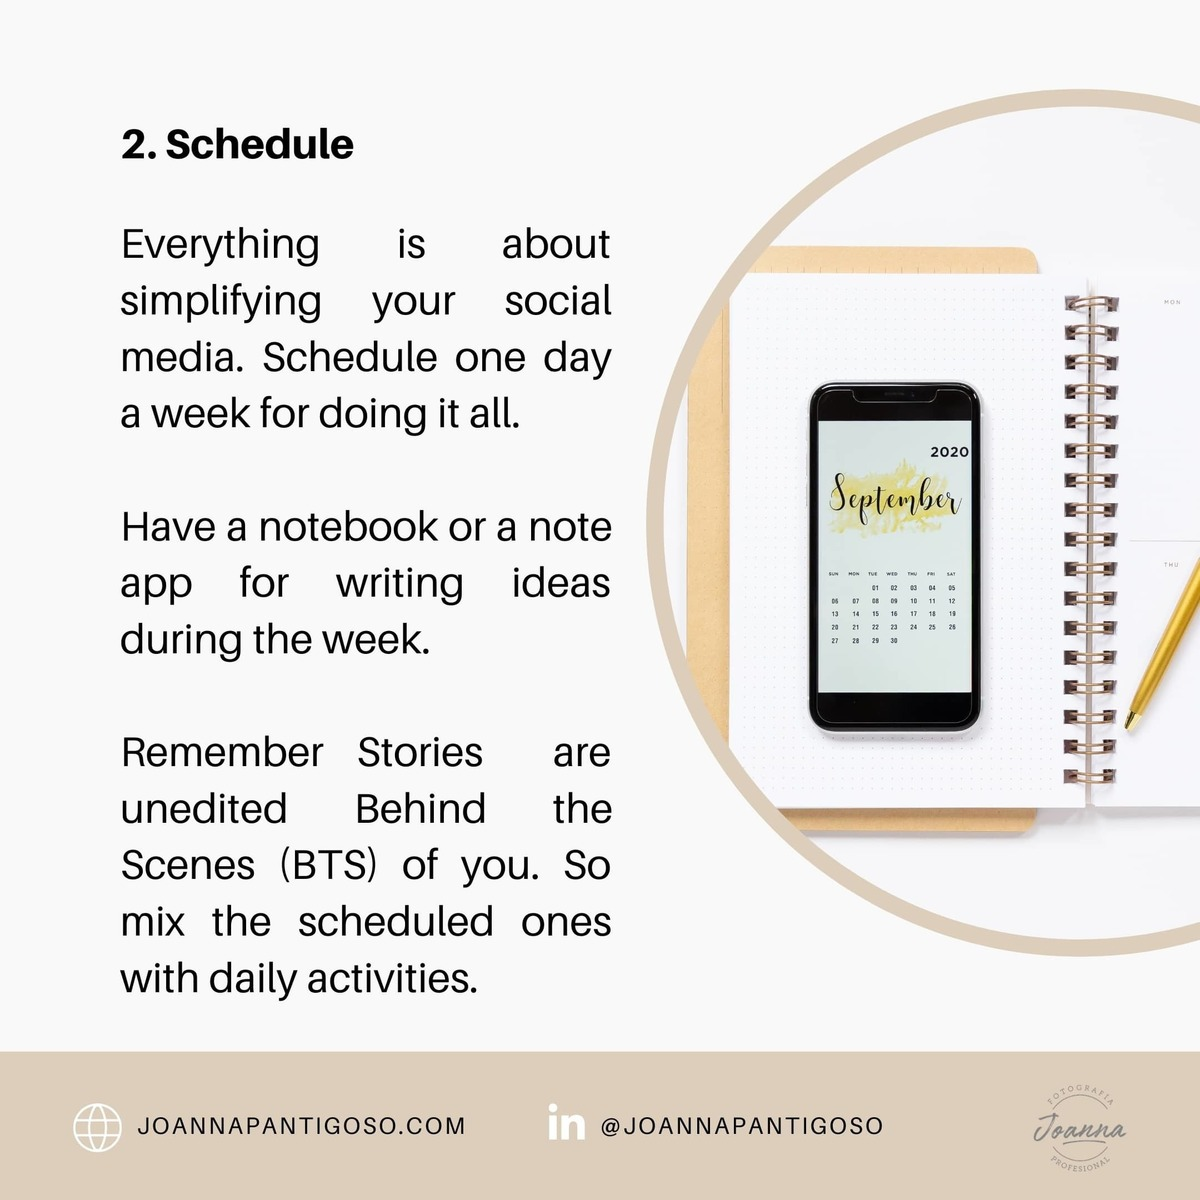 have a notebook or note app for write ideas during the week, but set a day for doing all your content